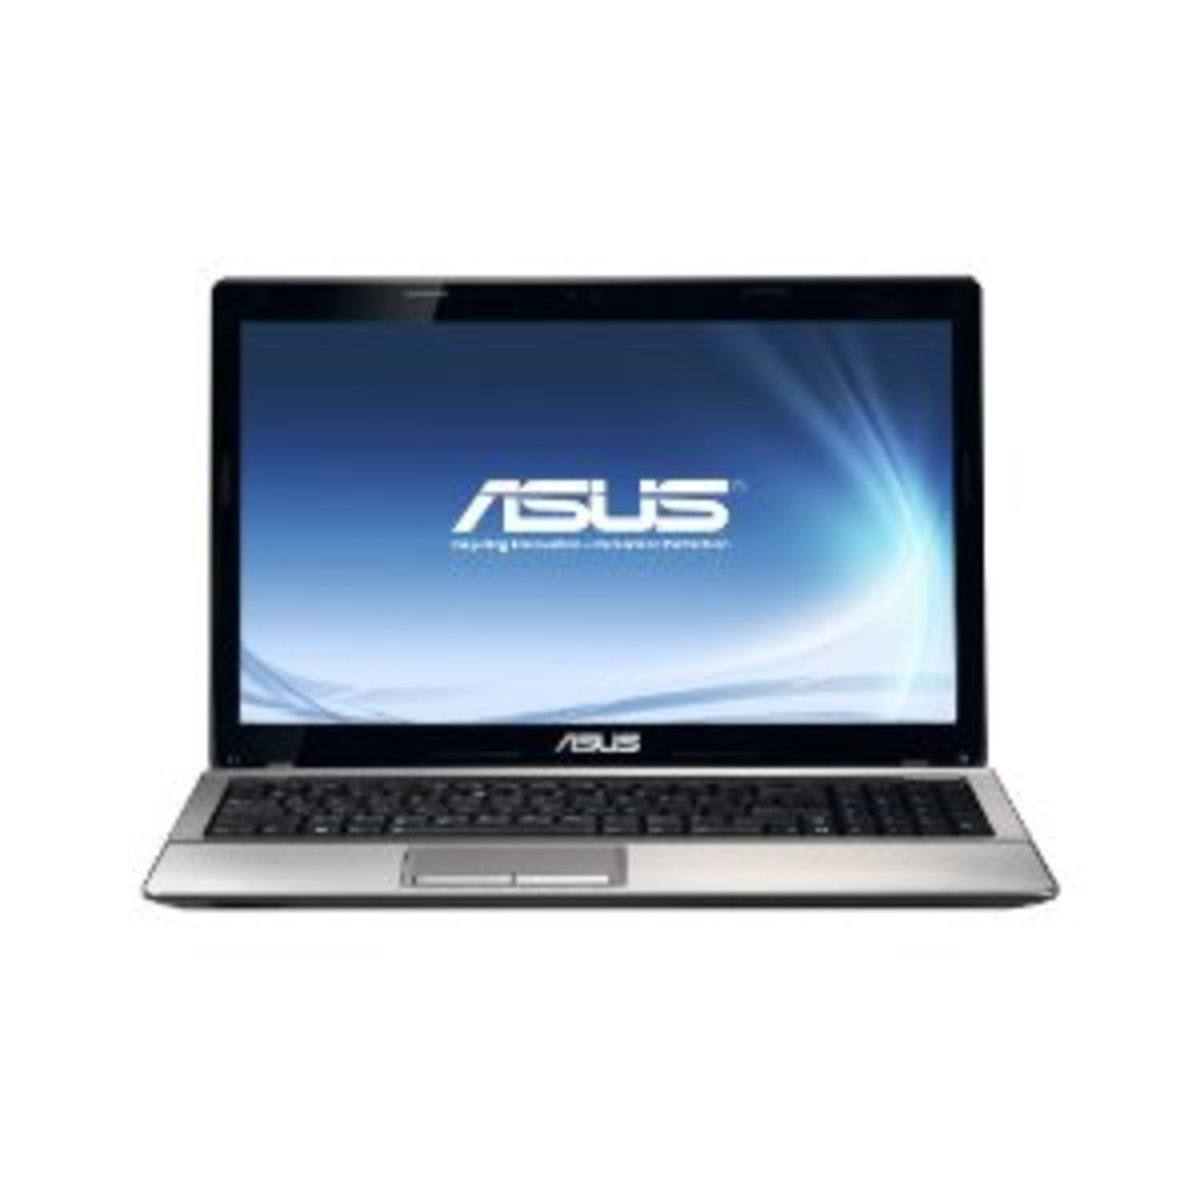 asus-a53s-laptop-review